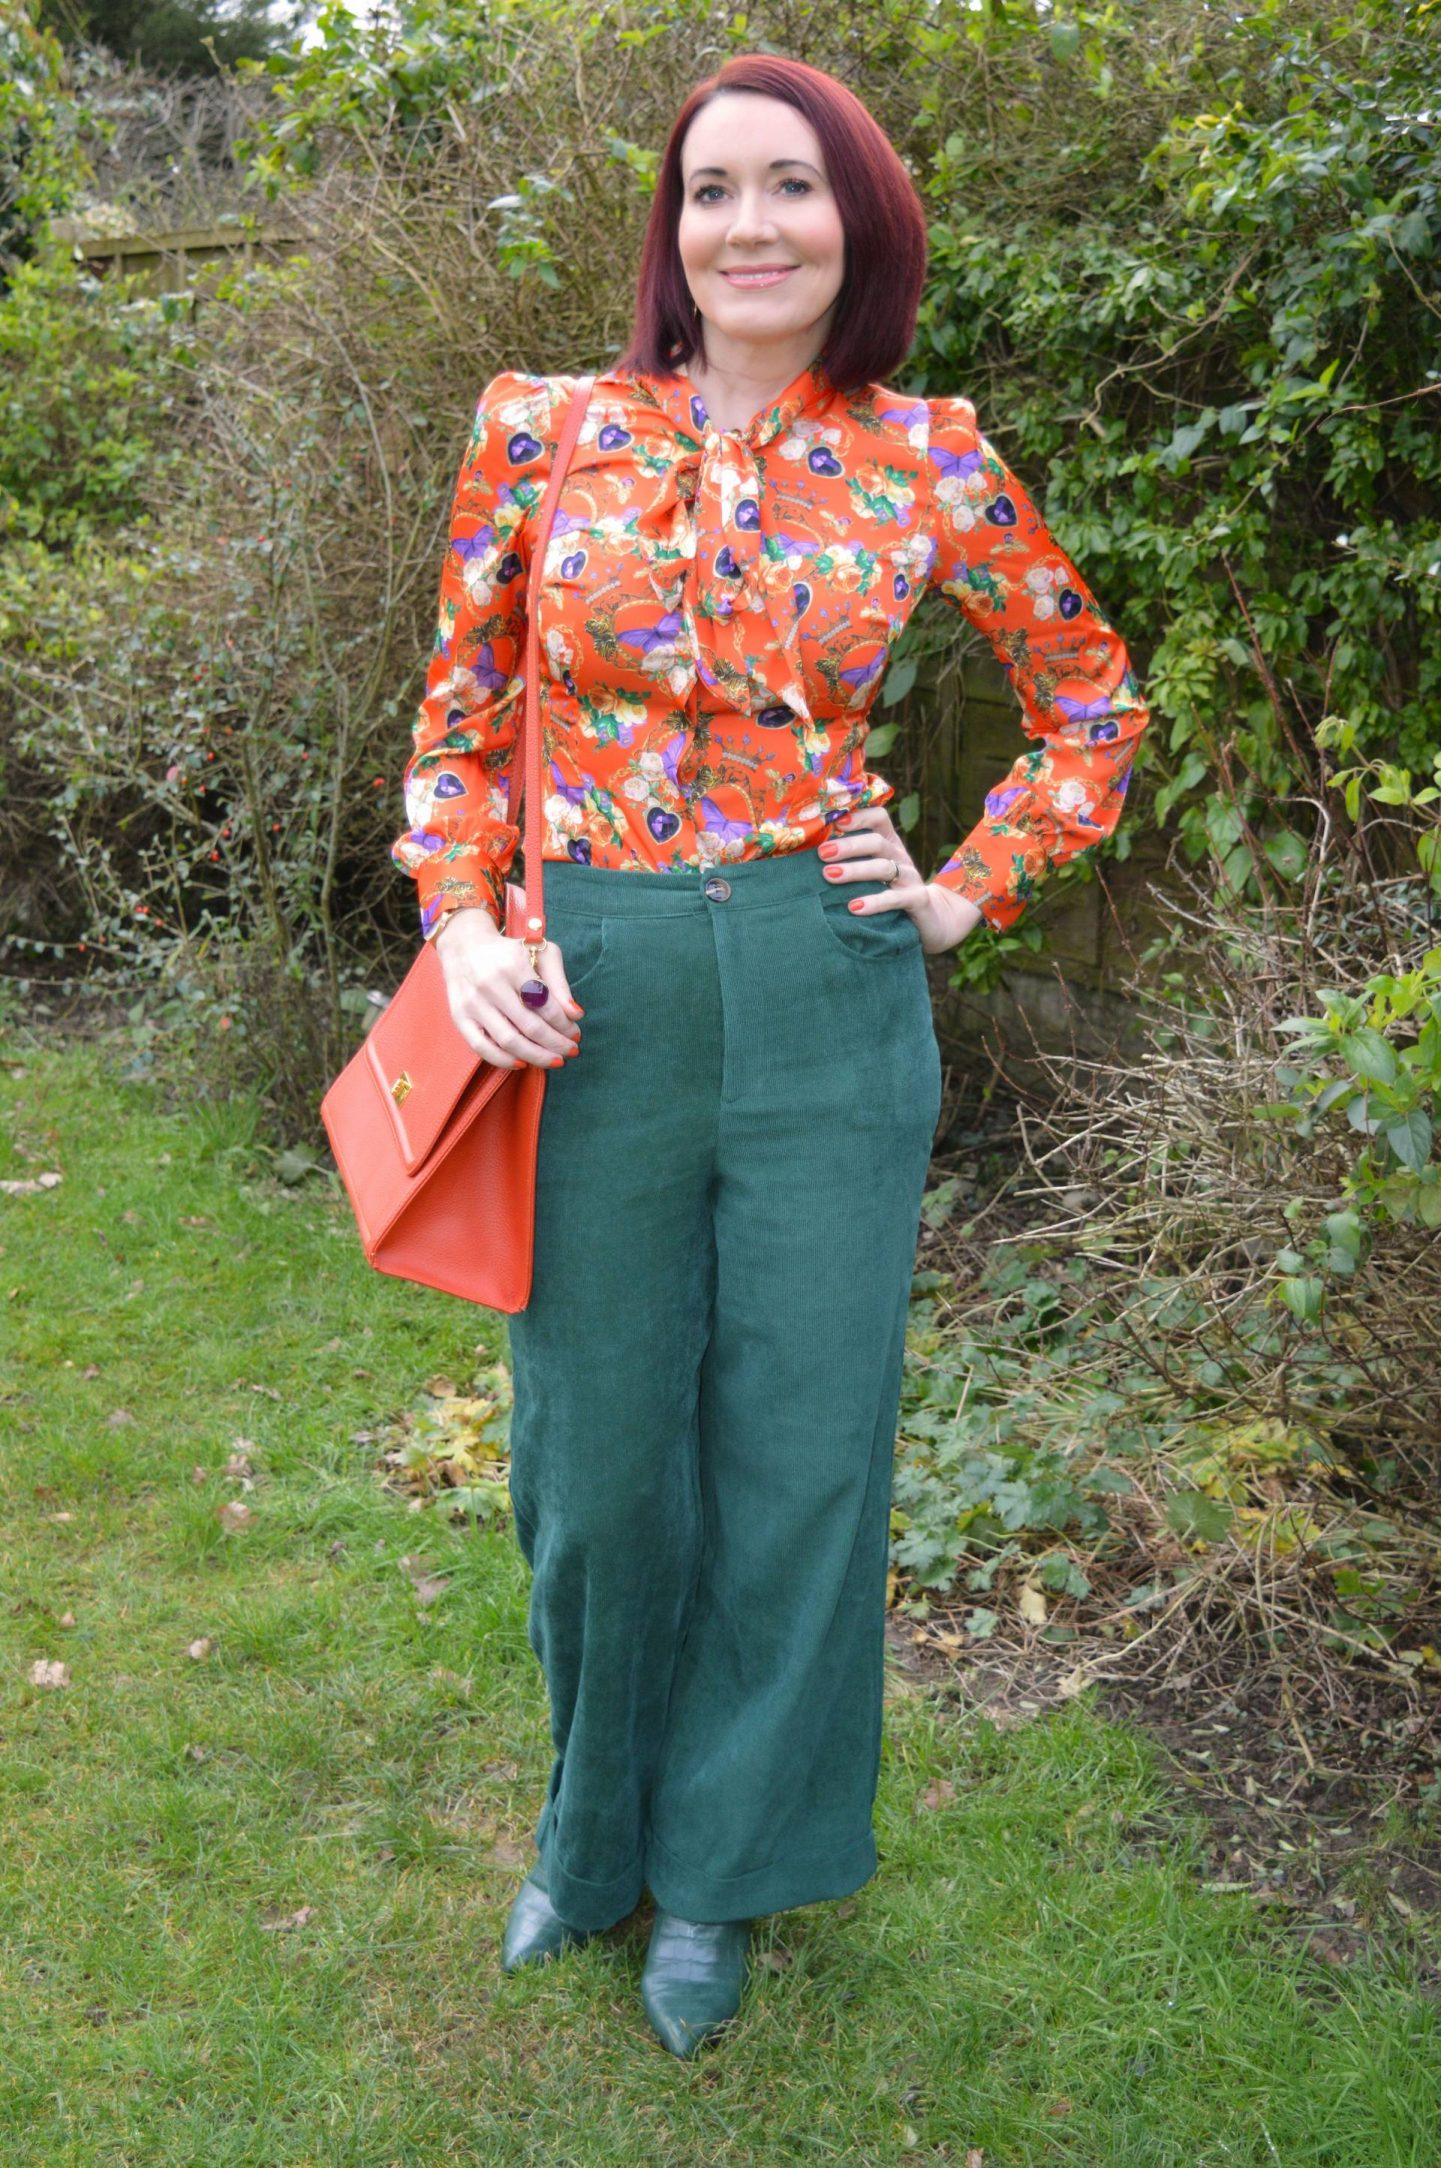 Hawes & Curtis Orange Pussy Bow Blouse and Green Cords,